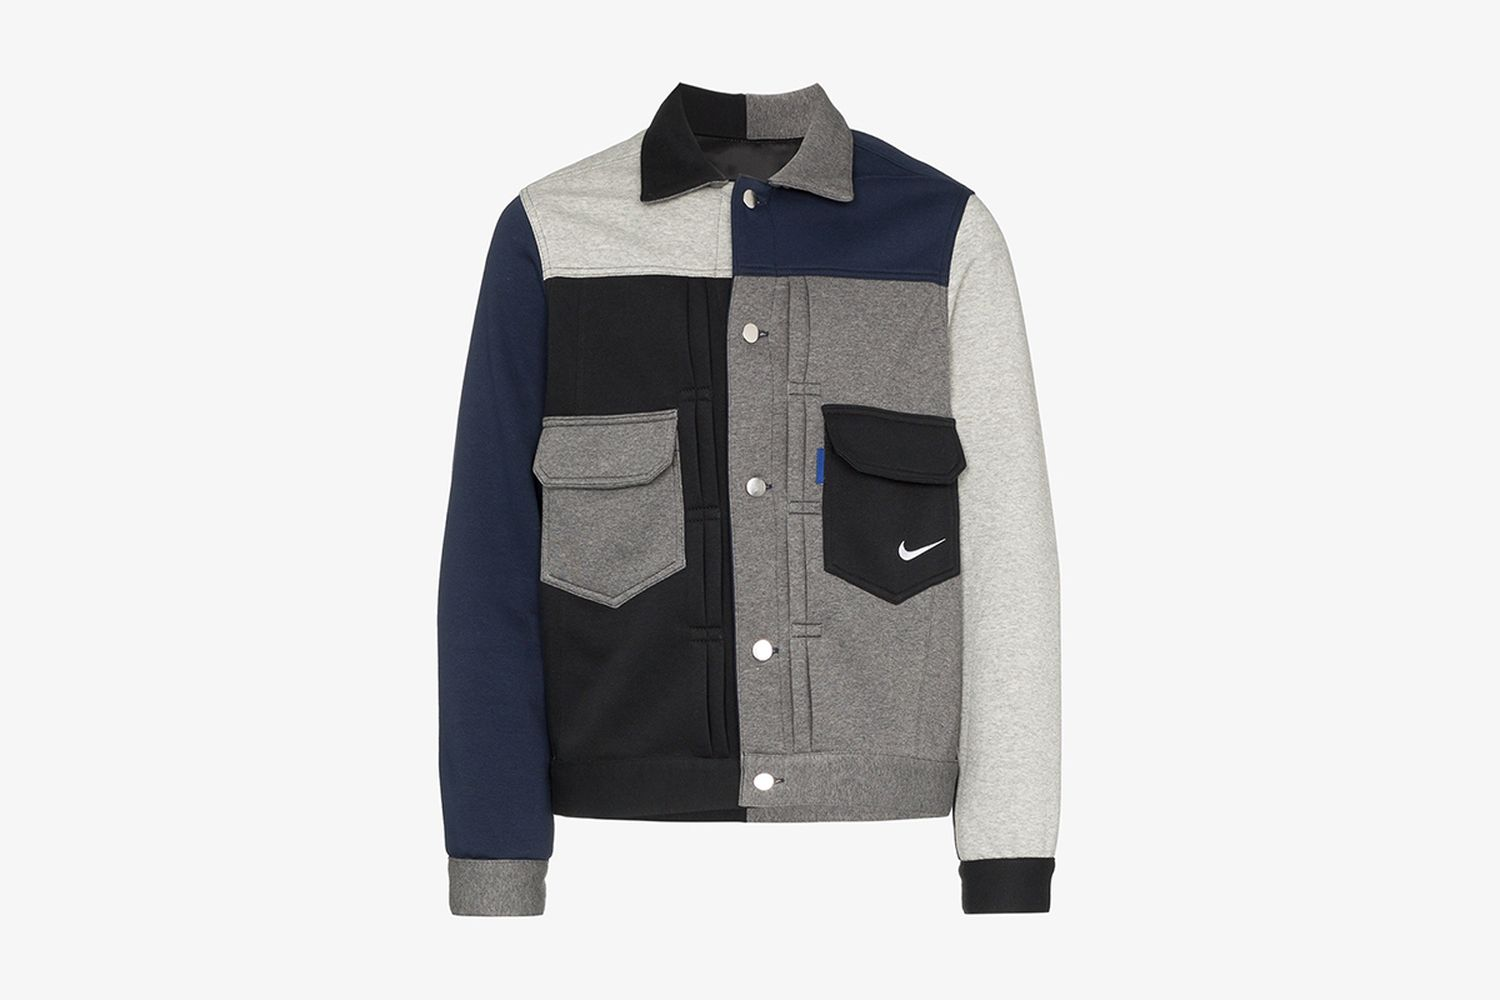 Nike Deconstructed Western Patchwork Jacket